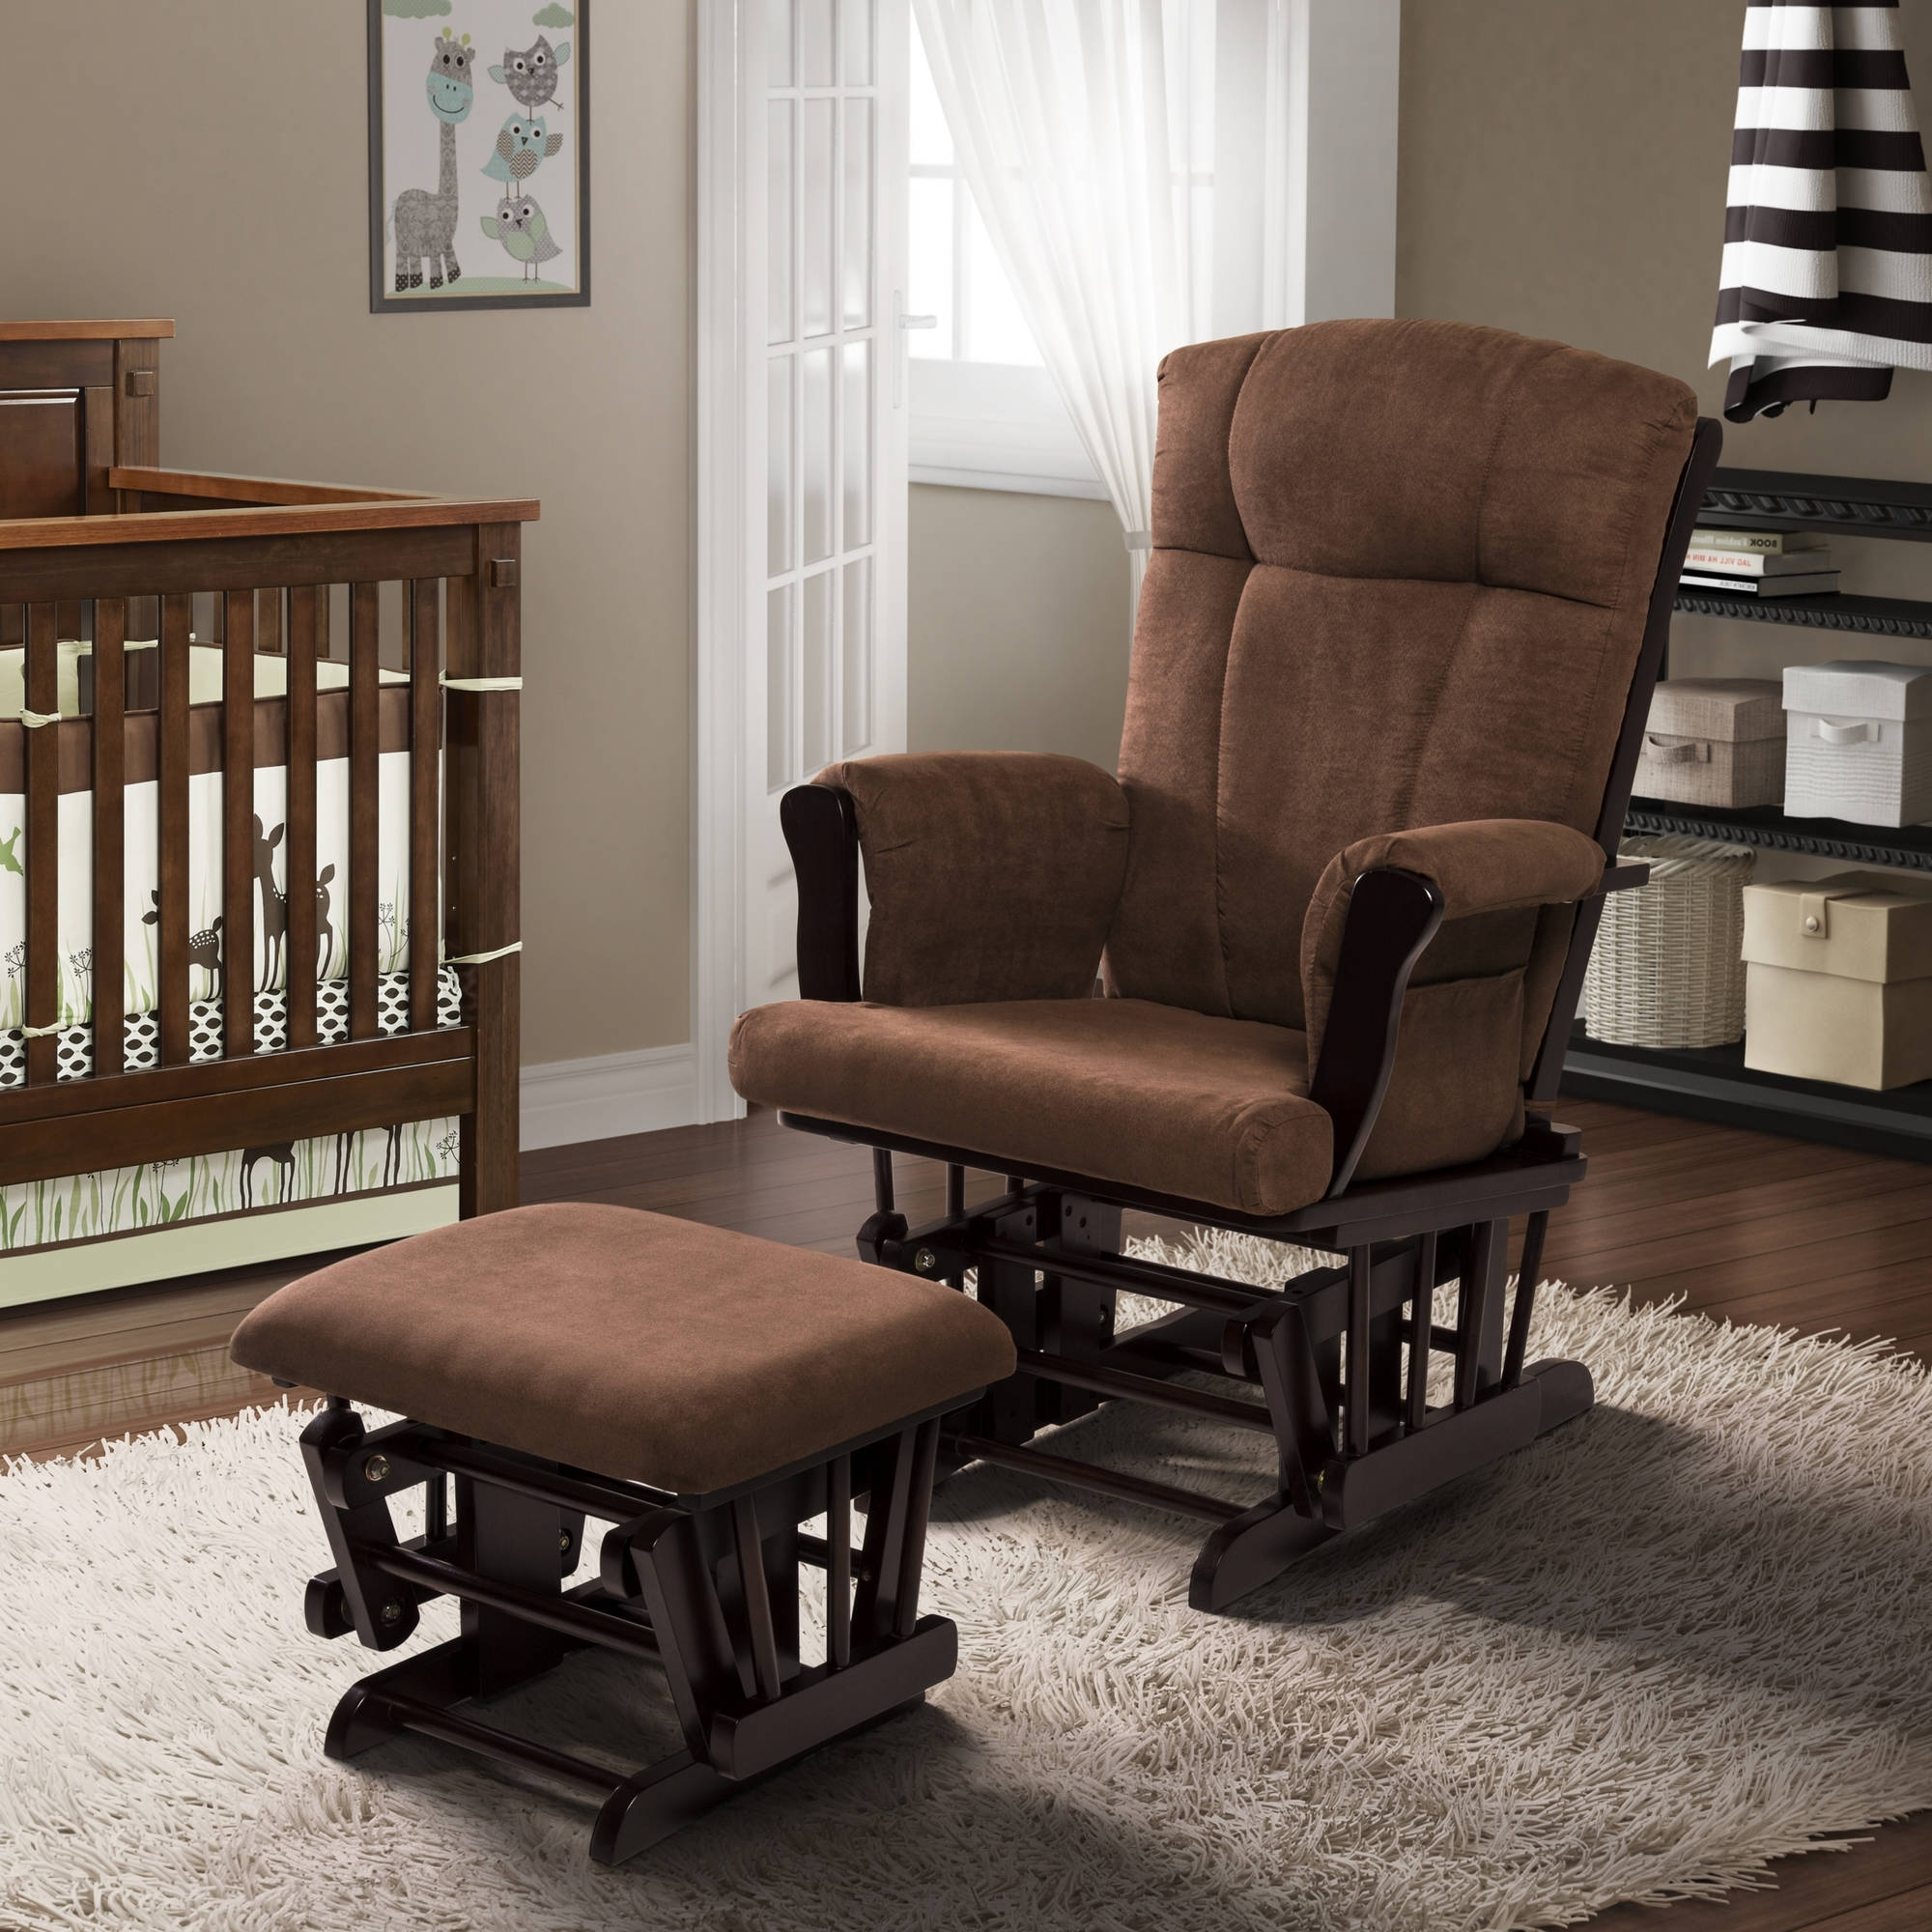 Walmart Rocking Chairs For Famous Baby Relax Hadley Double Rocker Dark Taupe – Walmart (View 10 of 15)